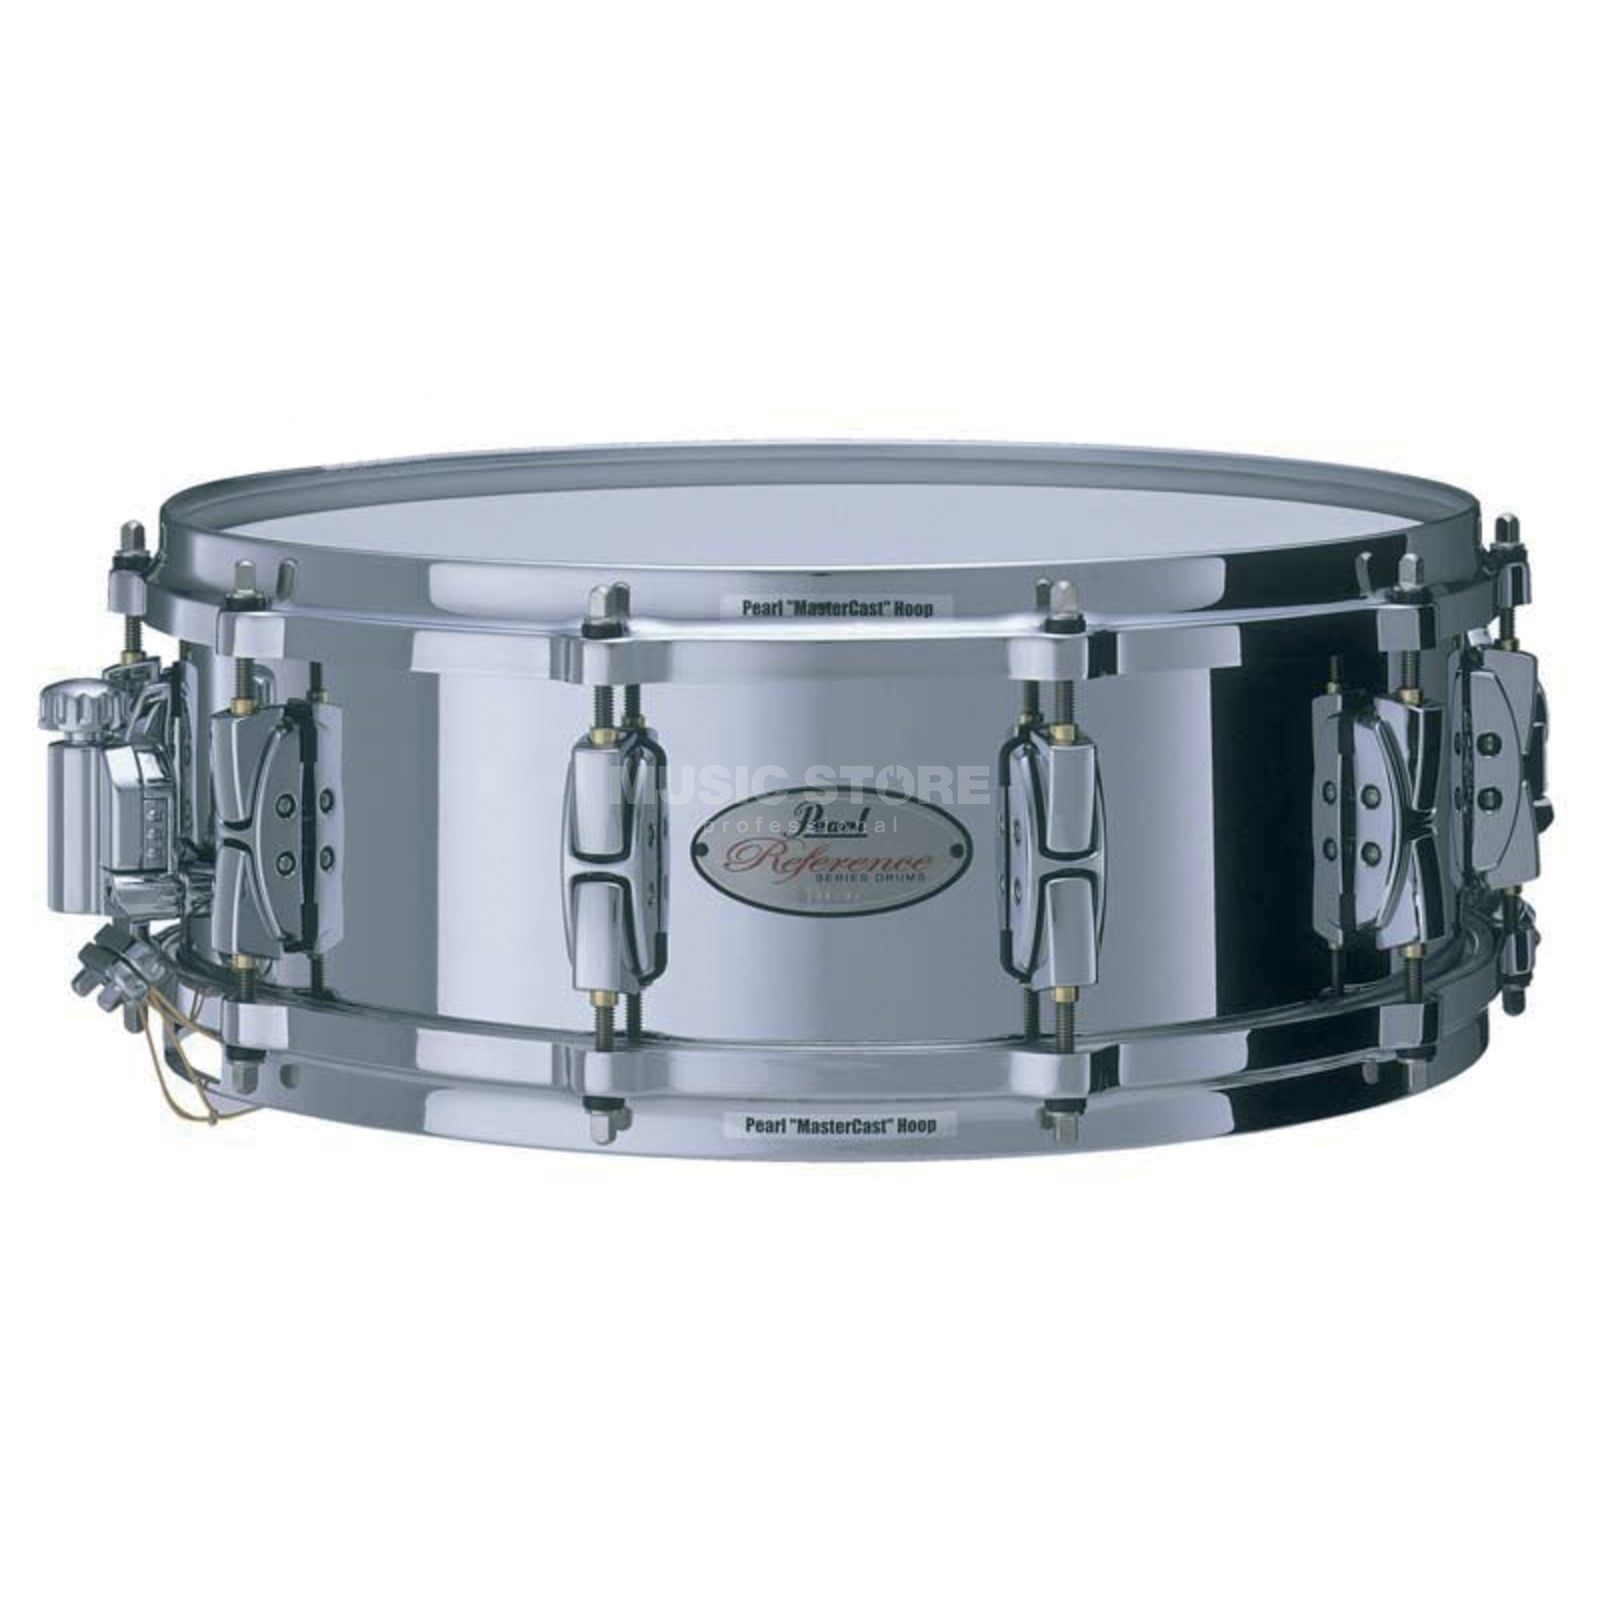 "Pearl RFS1450 Reference Snare 14""x5"", Steel Produktbild"